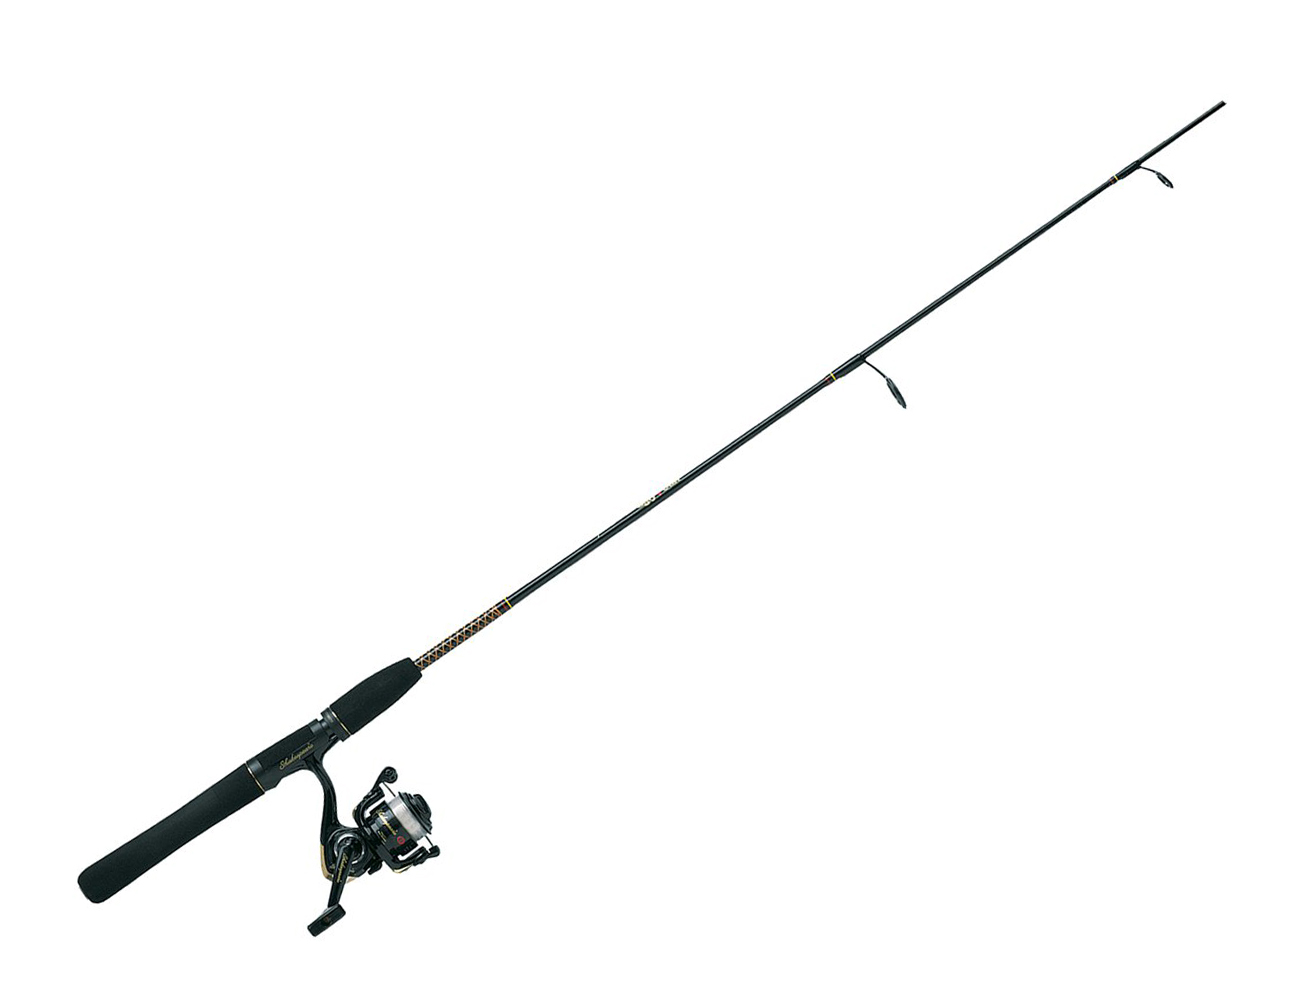 Fishing rod black and white clipart best for White fishing rod